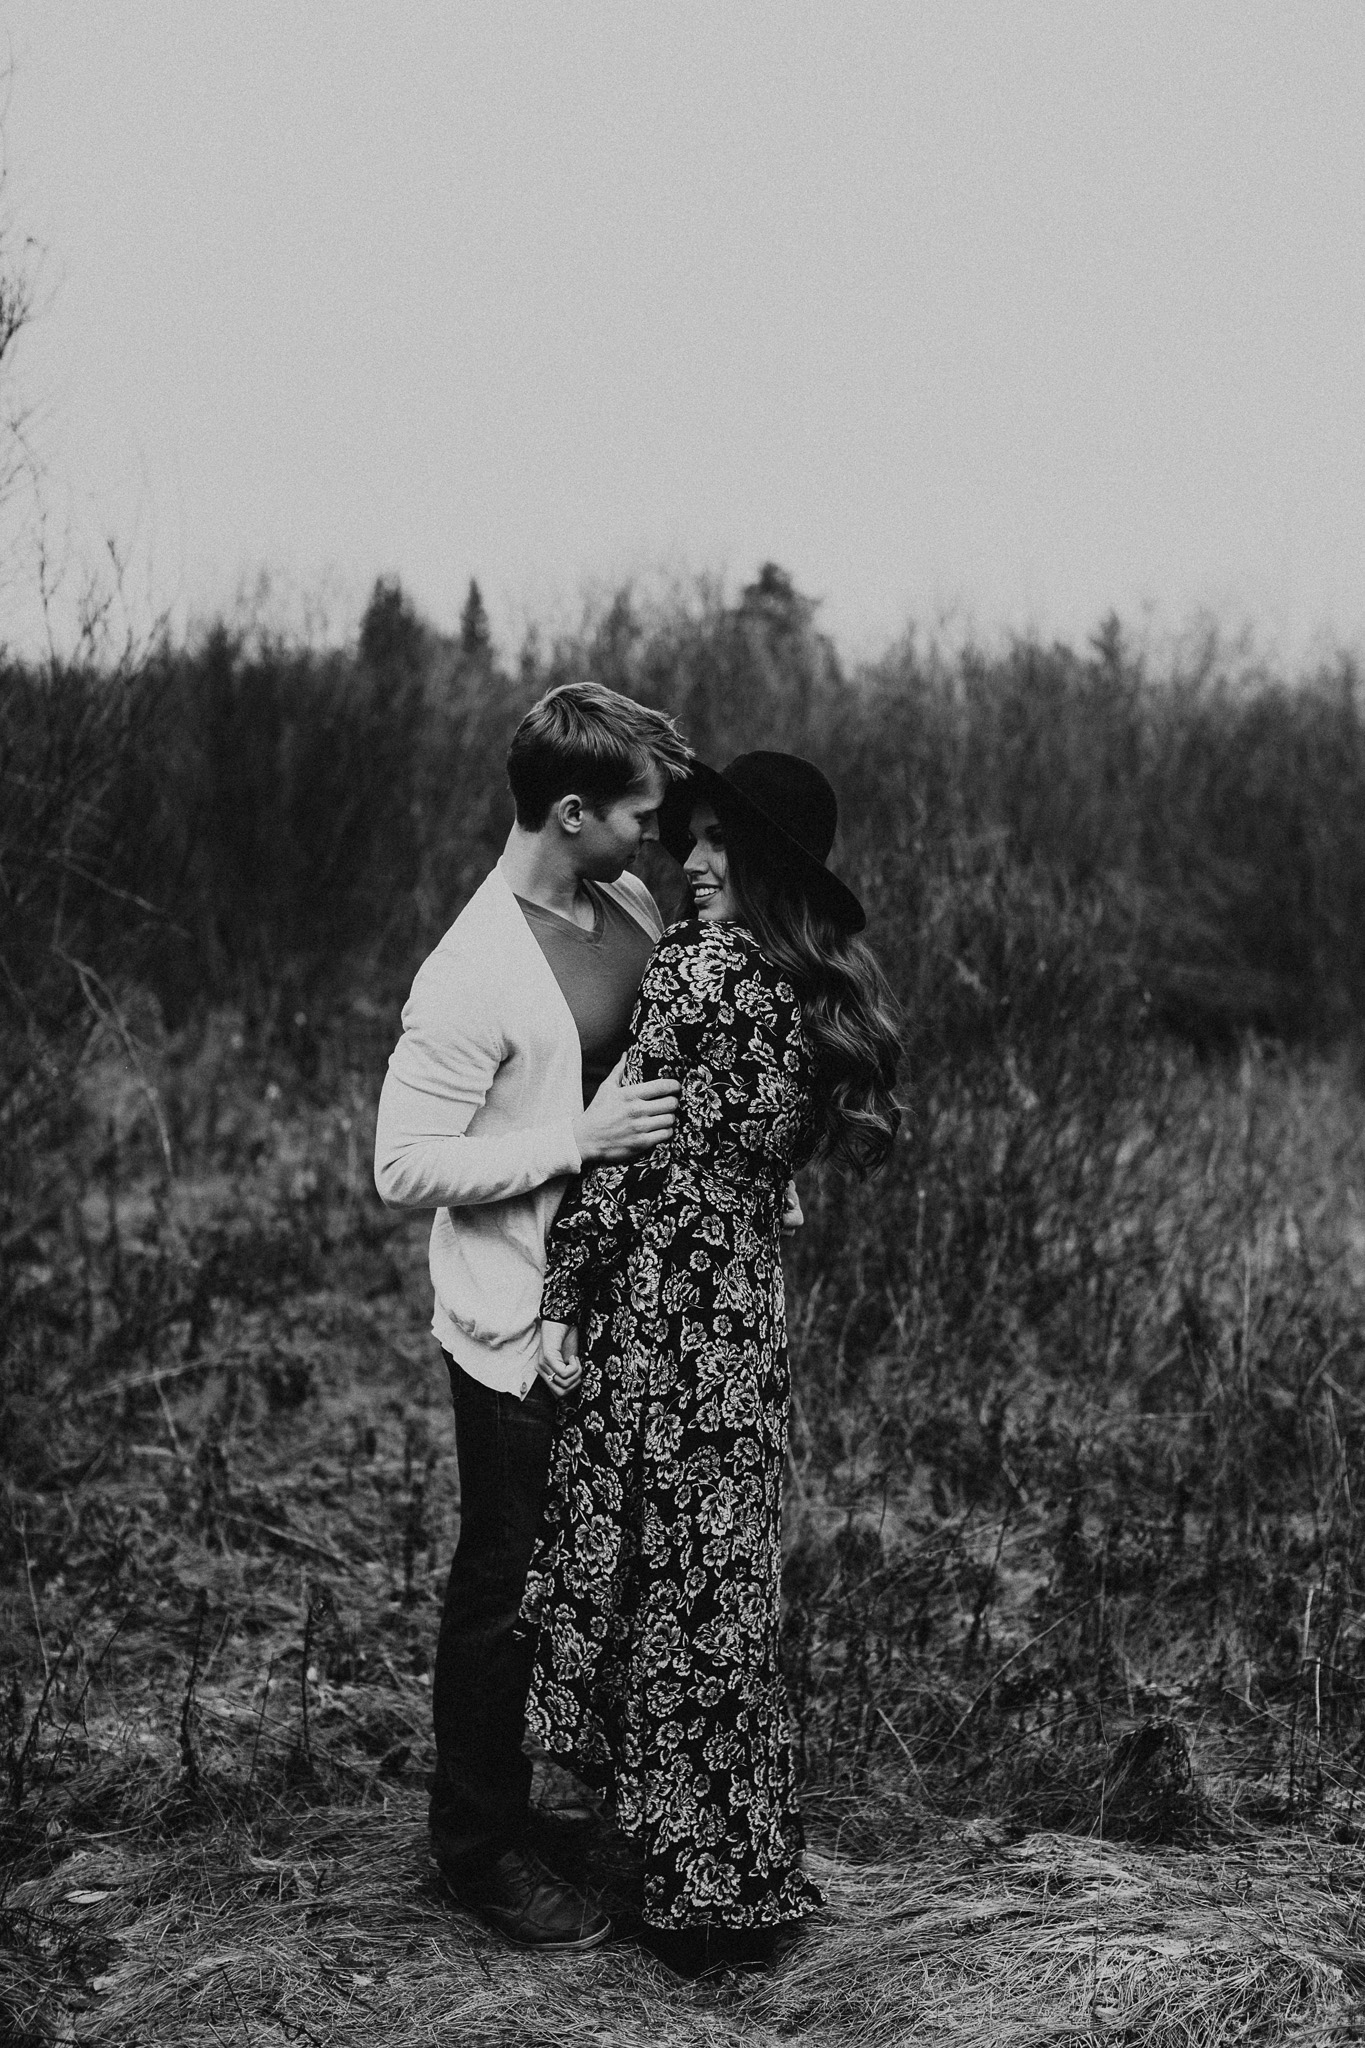 Edmonton Engagement Photographer - Michelle Larmand Photography - Mossy woods engagement session007